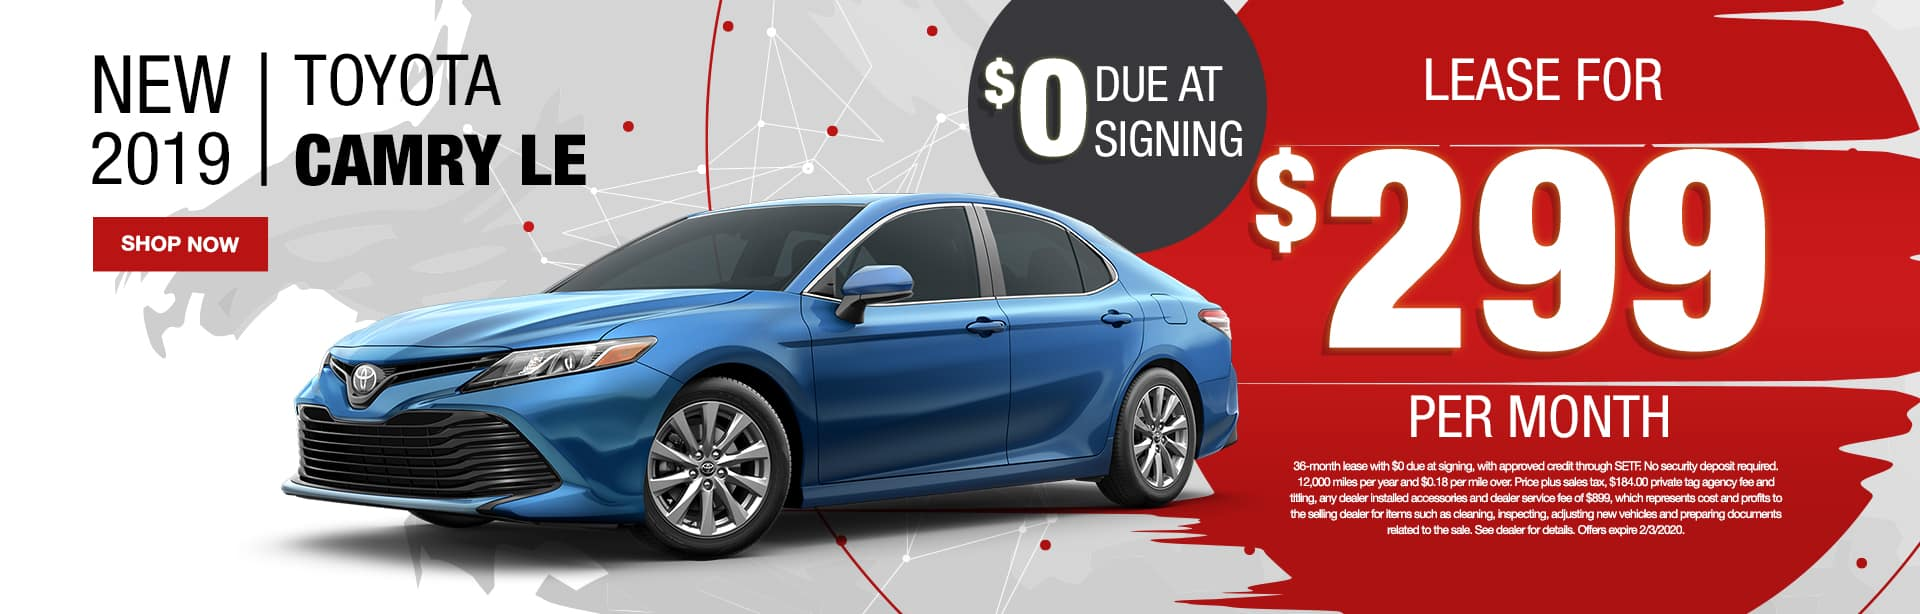 New 2019 Toyota Camry LE | $0 Due At Signing | Lease For $299 Per Month